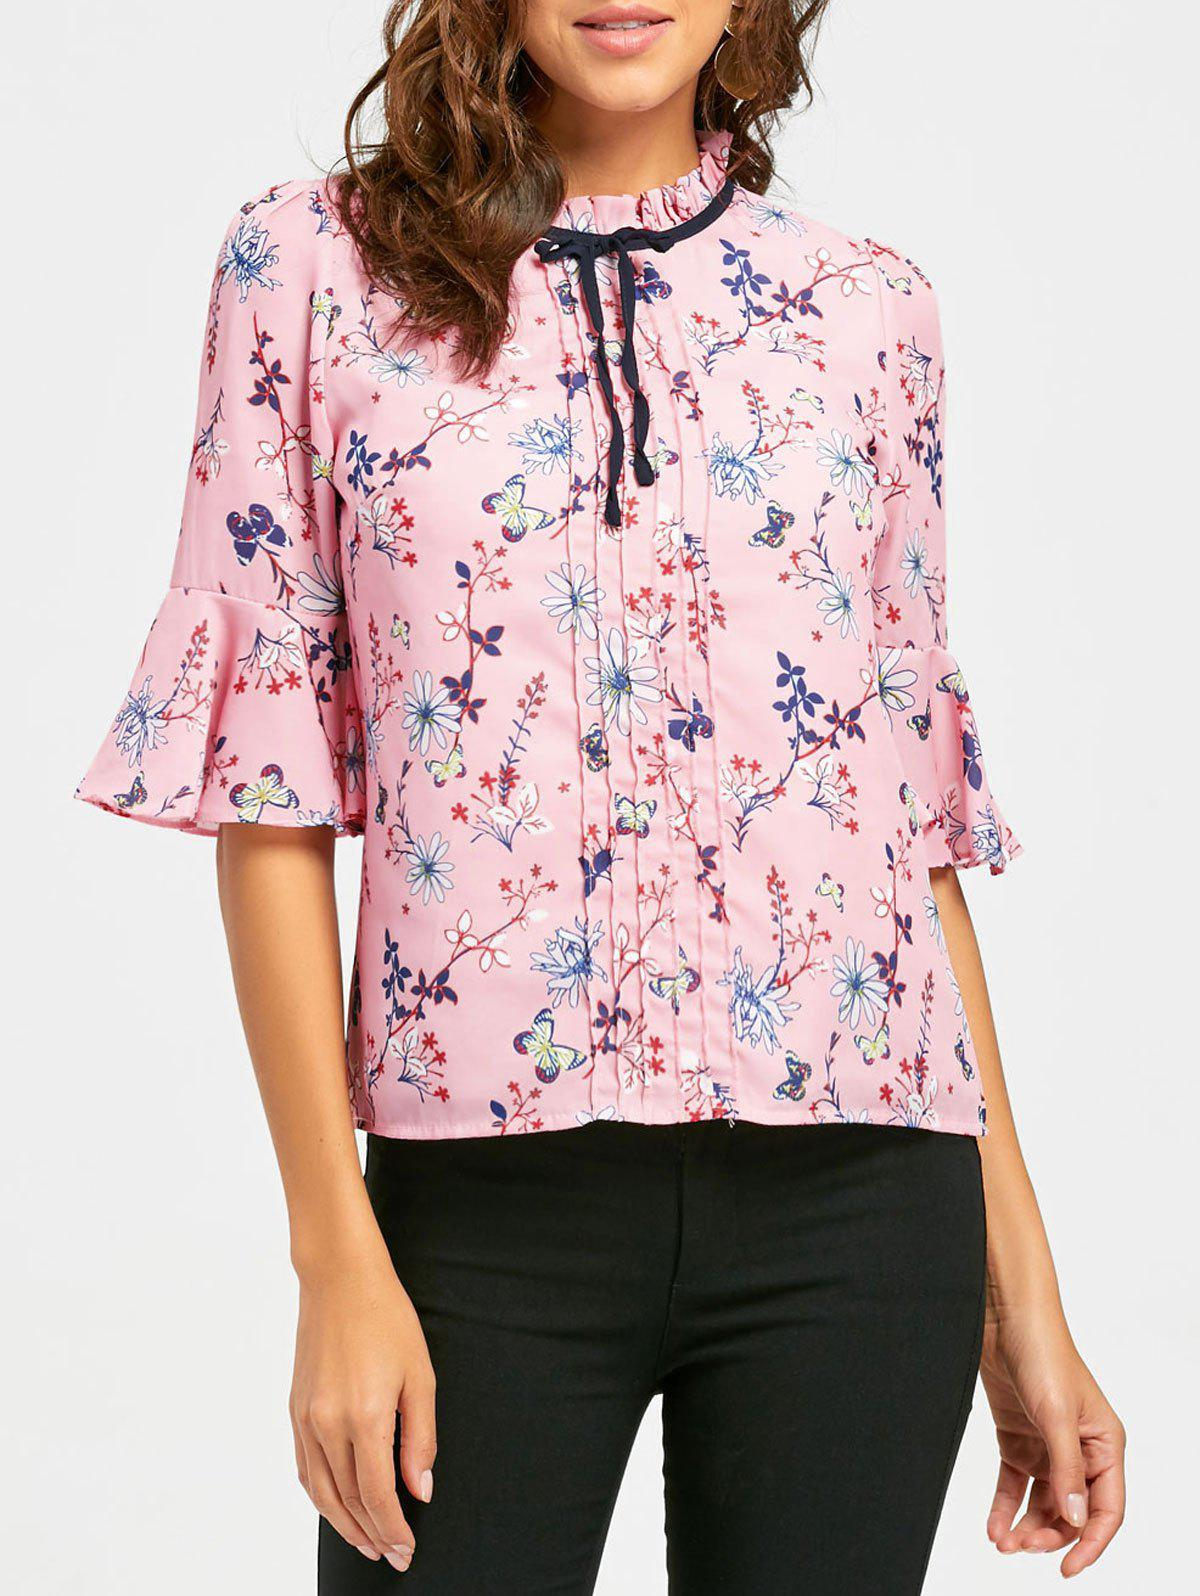 Hot Floral Ruffle Neck Self Tie Blouse